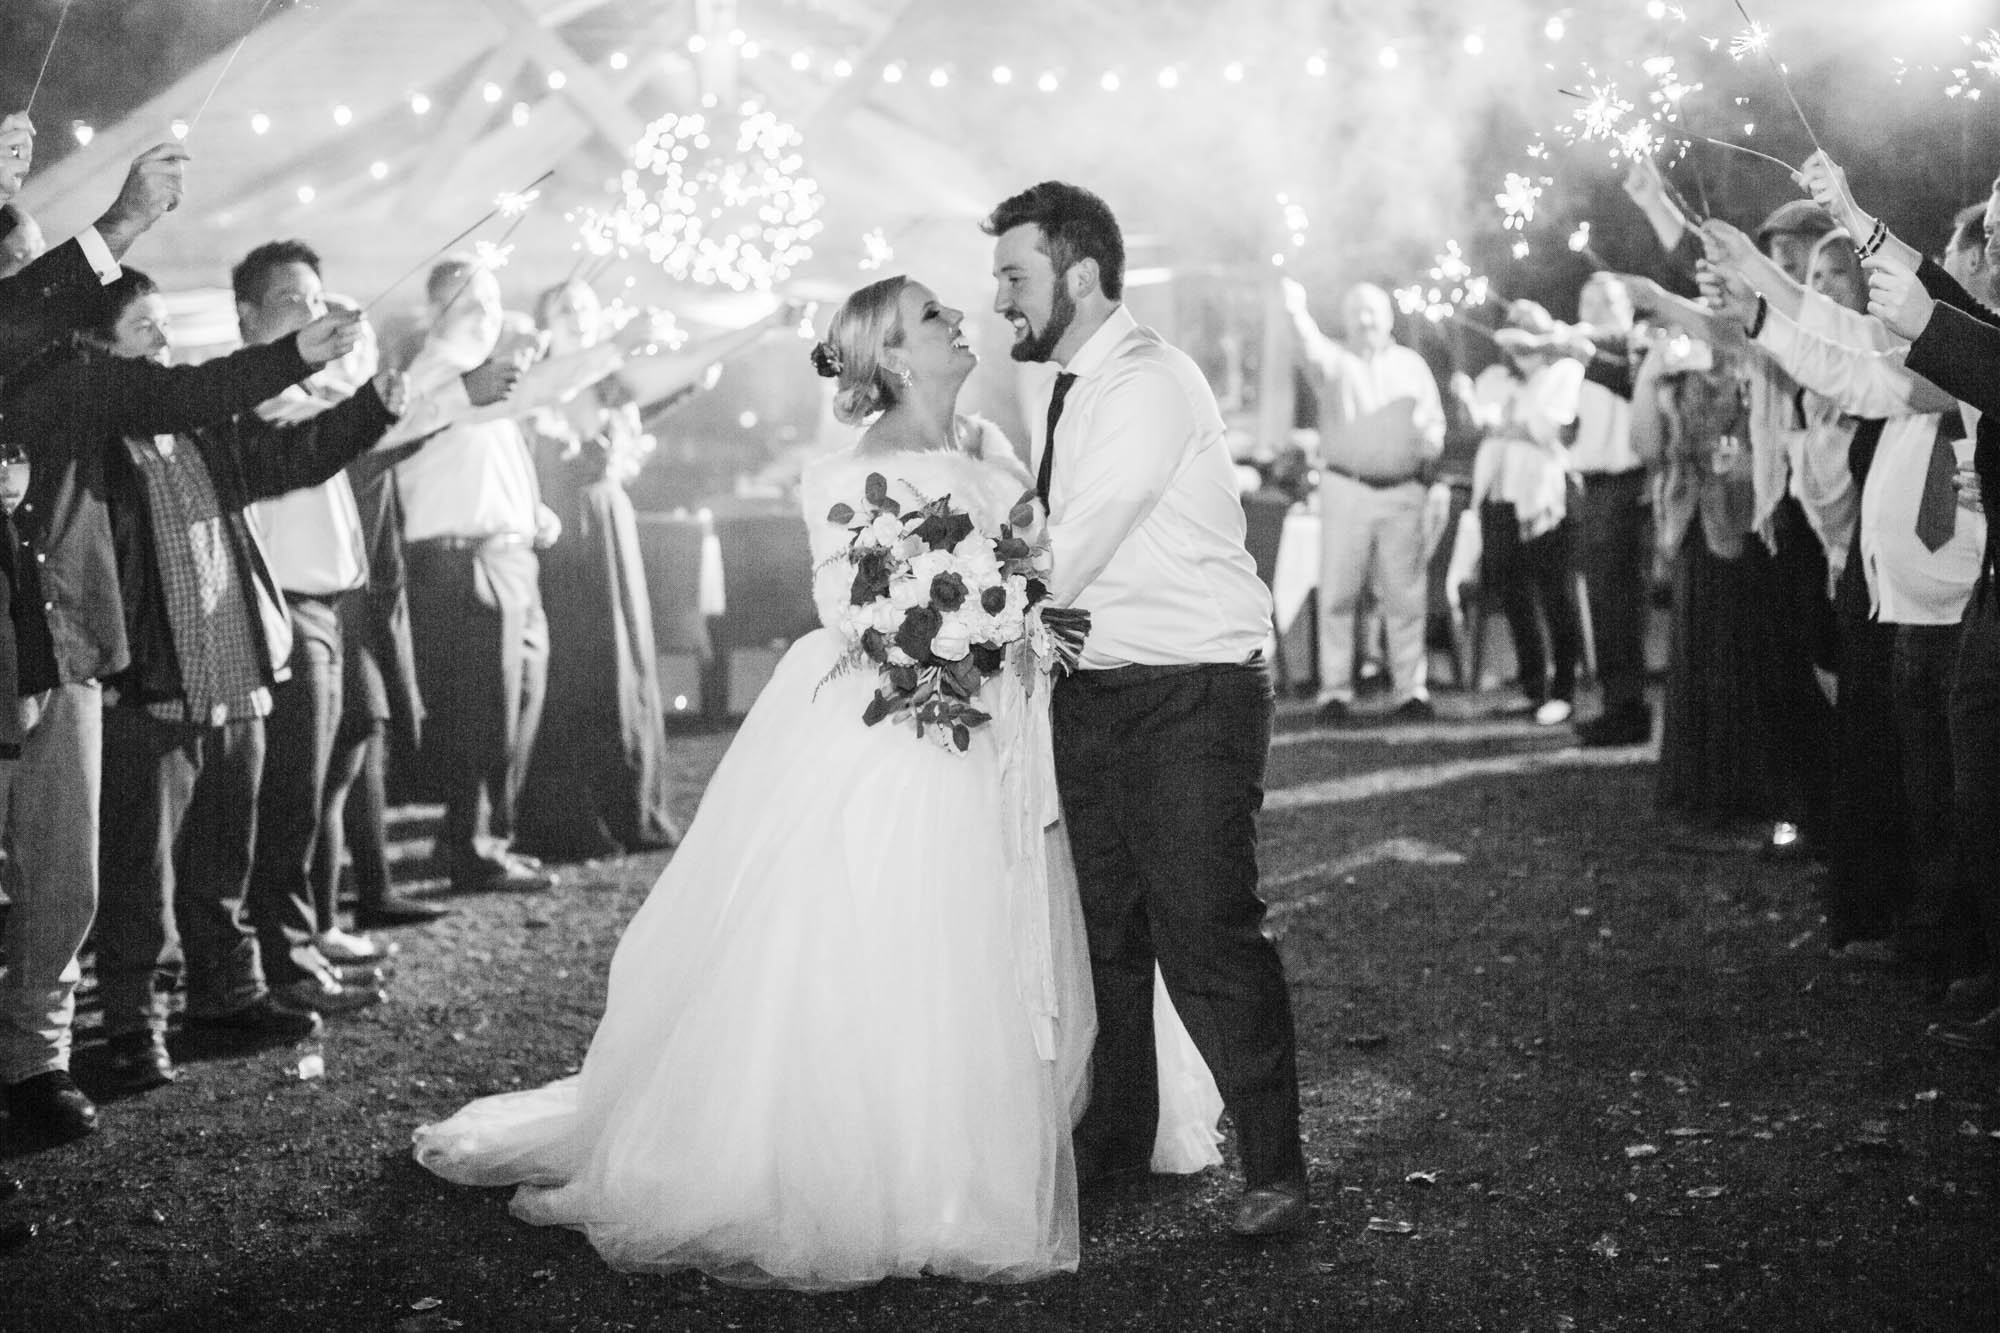 mountain wedding exit with sparklers in black and white